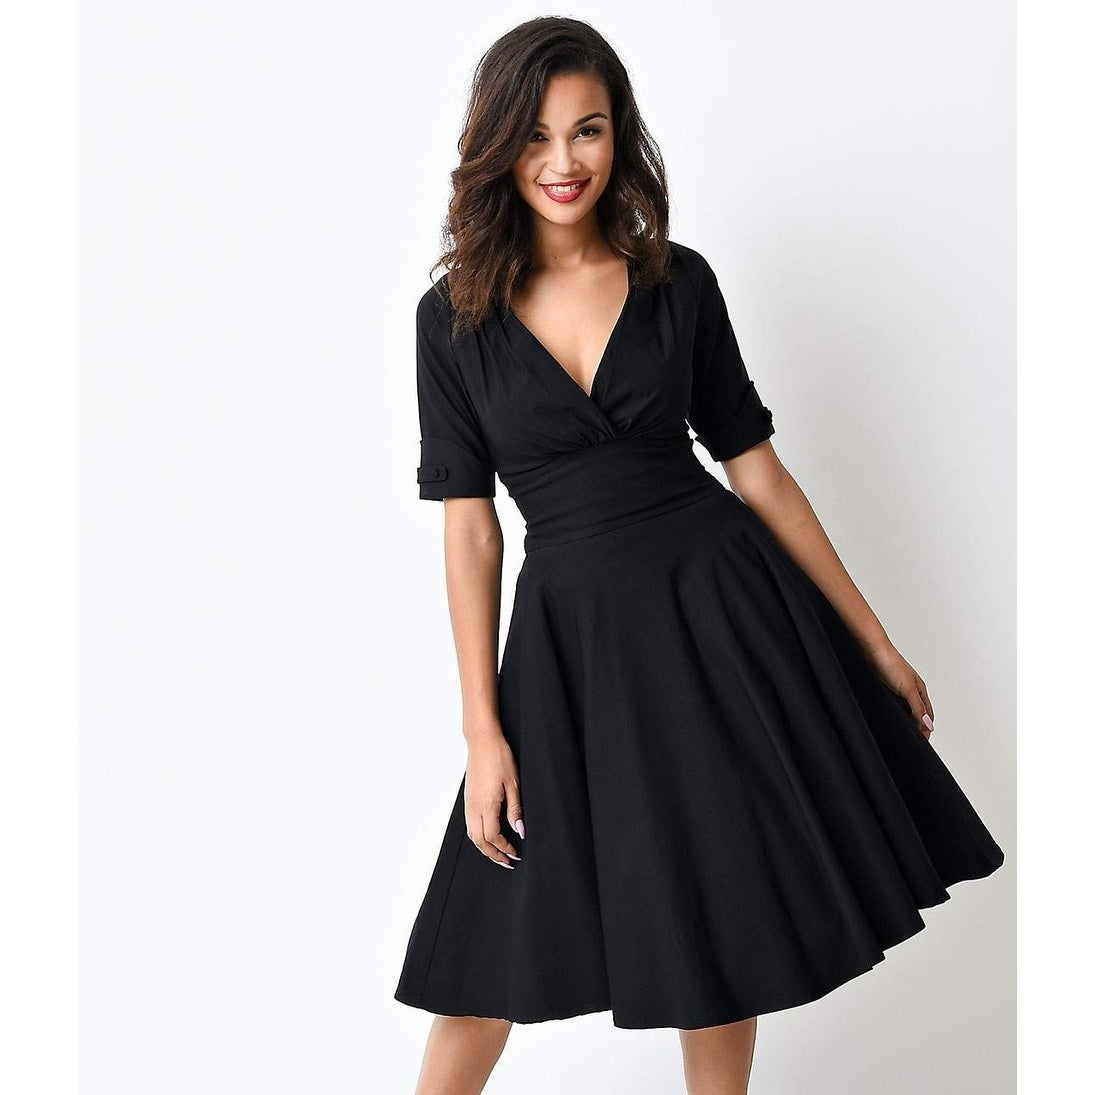 275498419a0c0 Shop Unique Vintage Black Delores Swing Dress - Free Shipping Today -  Overstock - 21025363